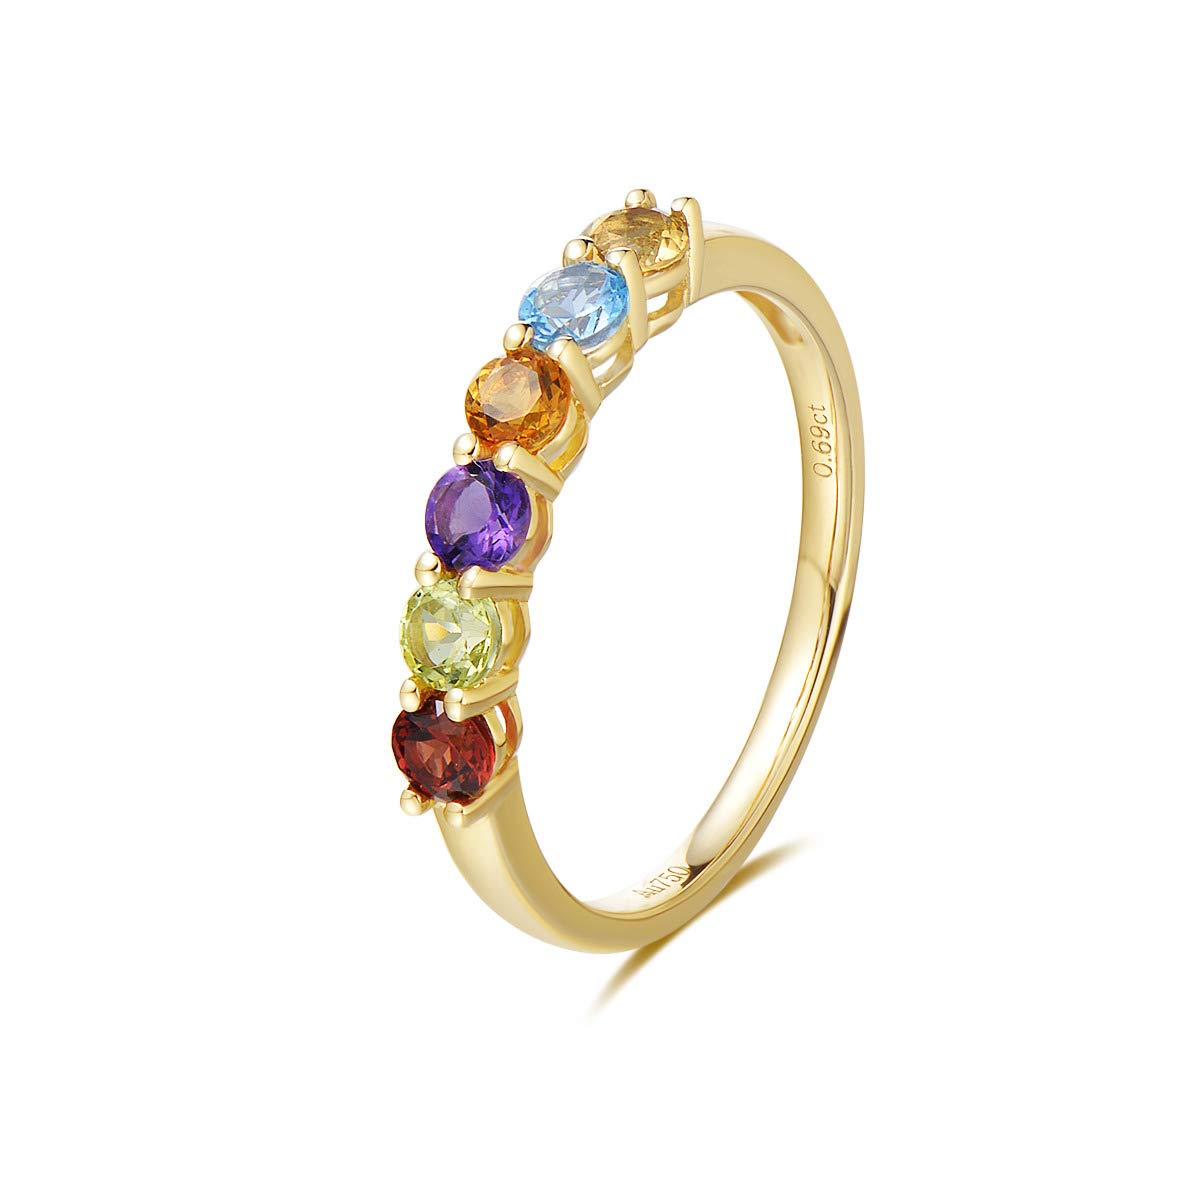 FANCIME 14k Solid Yellow Gold Multicolor Gemstone 0.874cttw Peridot/Blue Topaz/Amethyst/Garnet/Citrine Wedding Engagement Band Ring For Women Girls by FANCIME